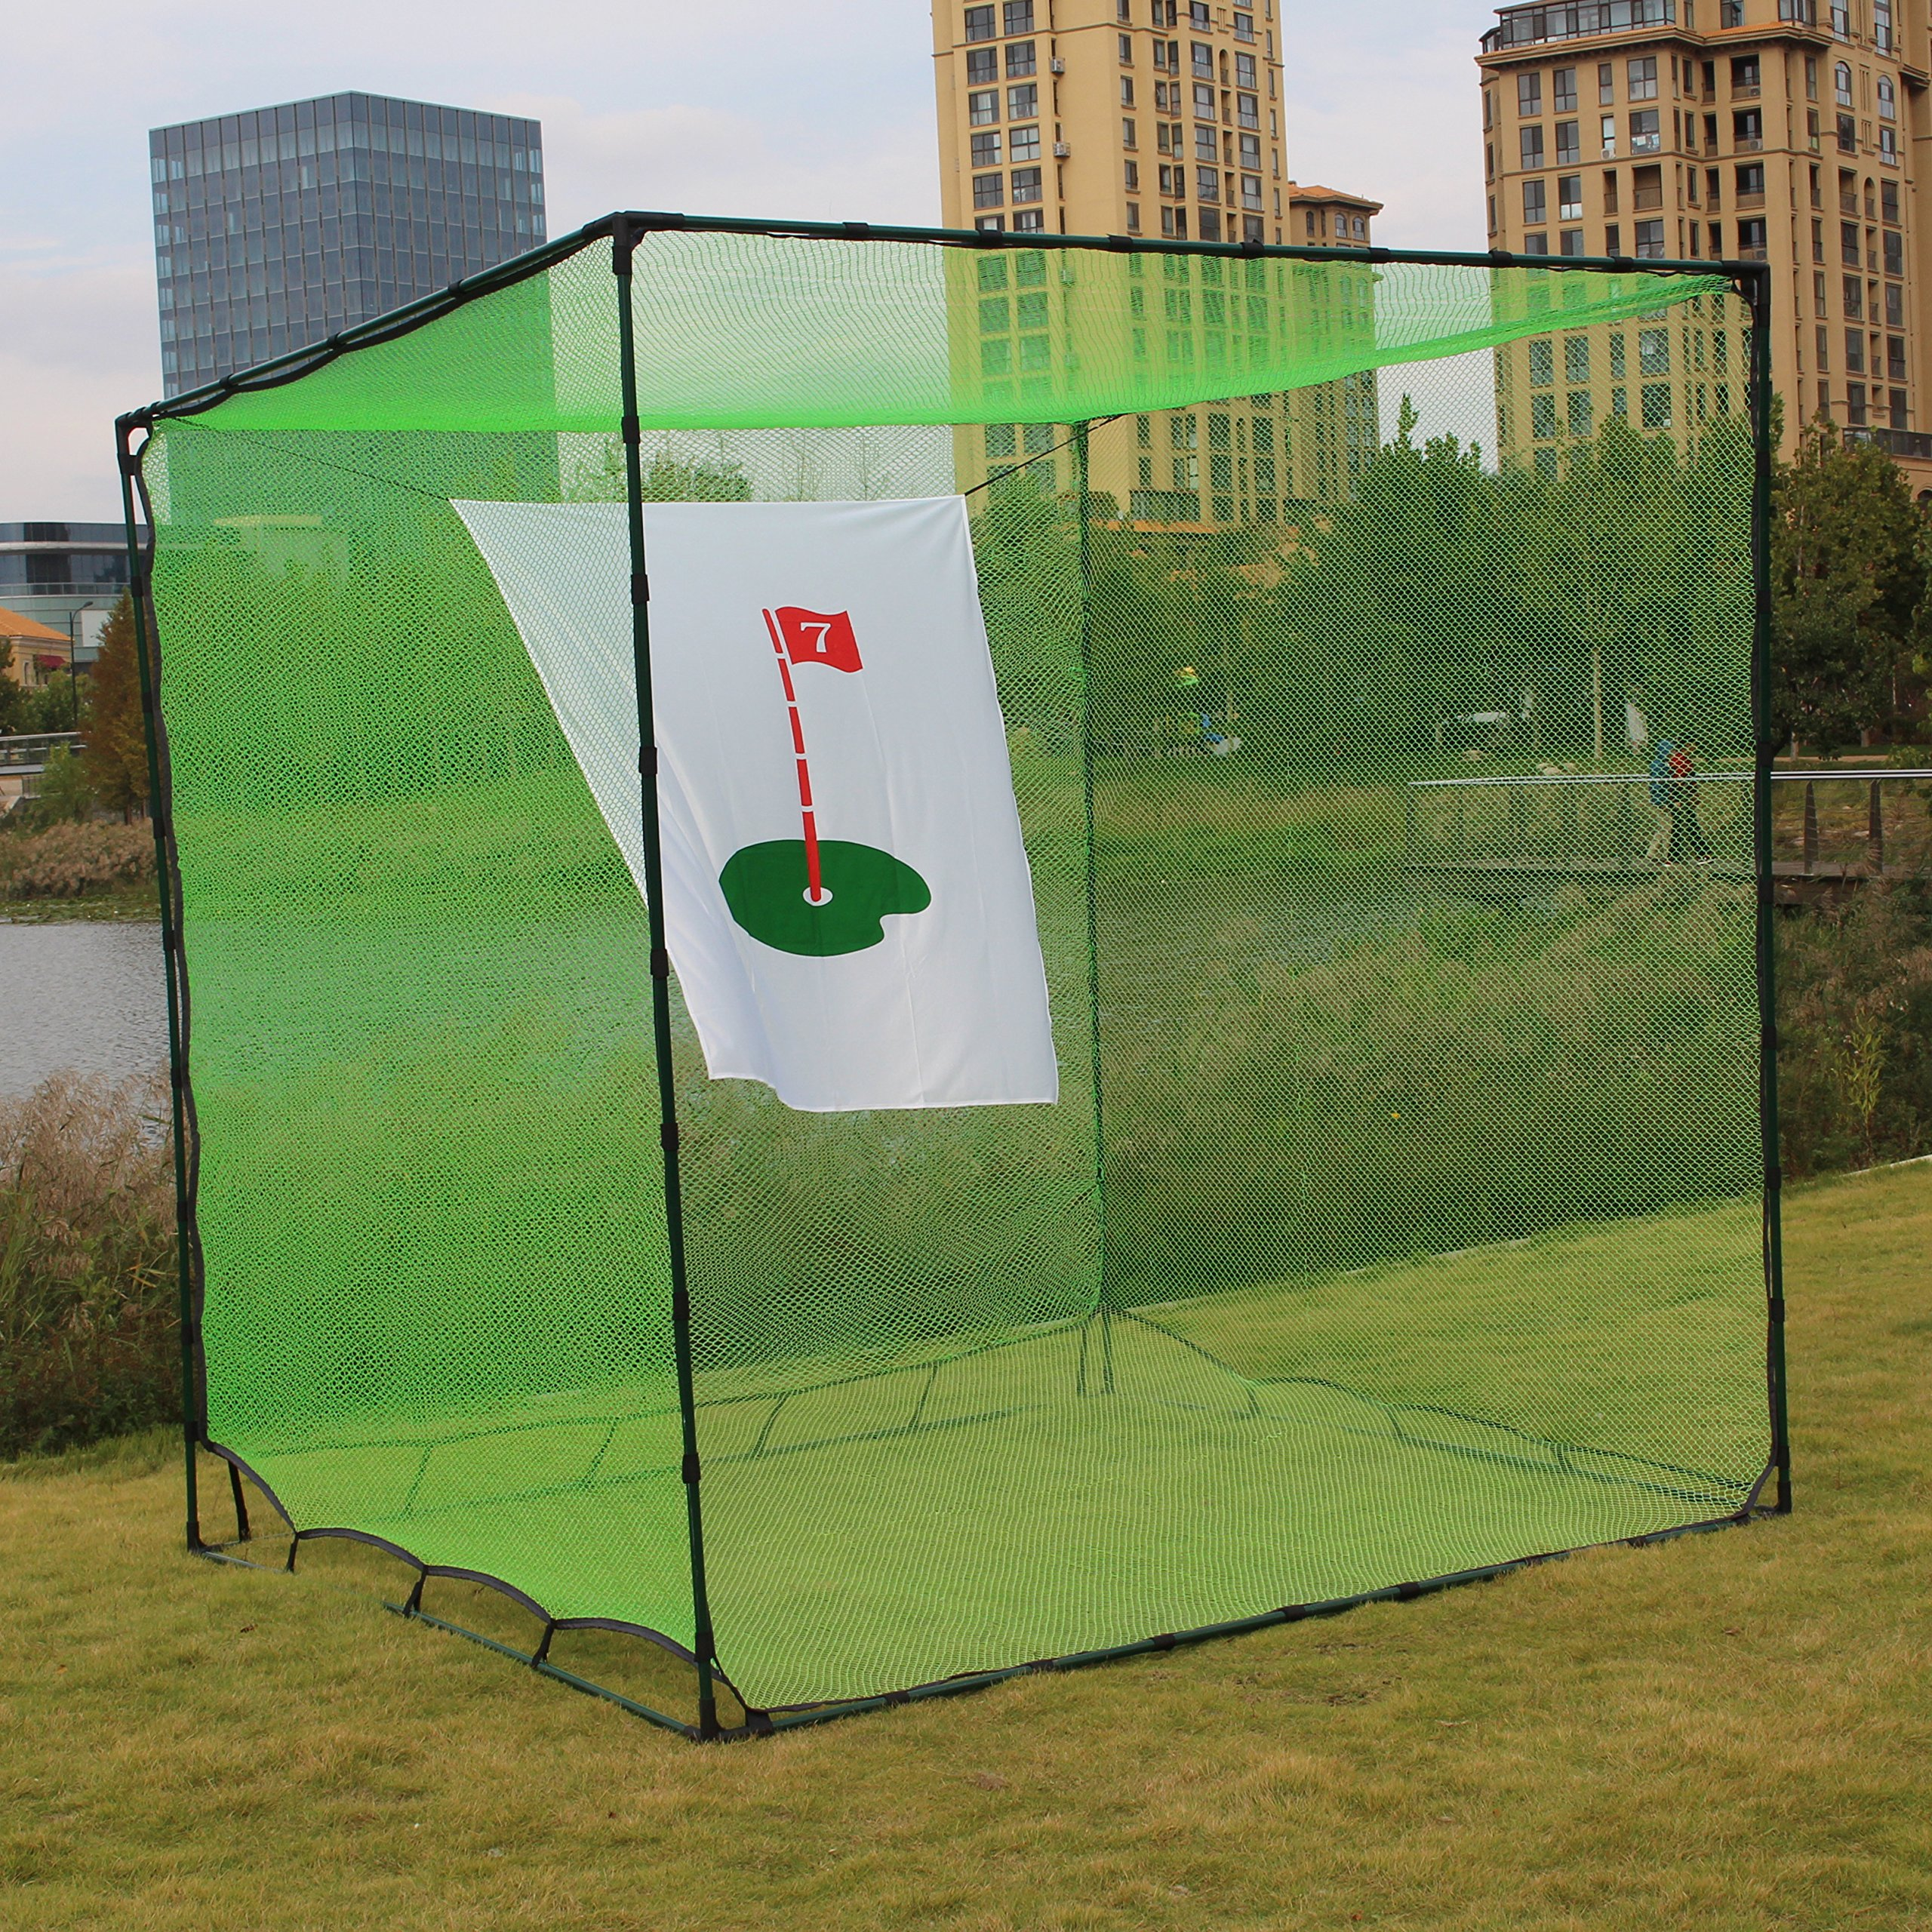 300 X 300 X 300 cm / 10' X 10' X10' Golf Batting Cage double backstop and target /Golf Hitting Cage Target Net,Heavy Duty Net with Target Automatic Ball Return Practice in Backyard